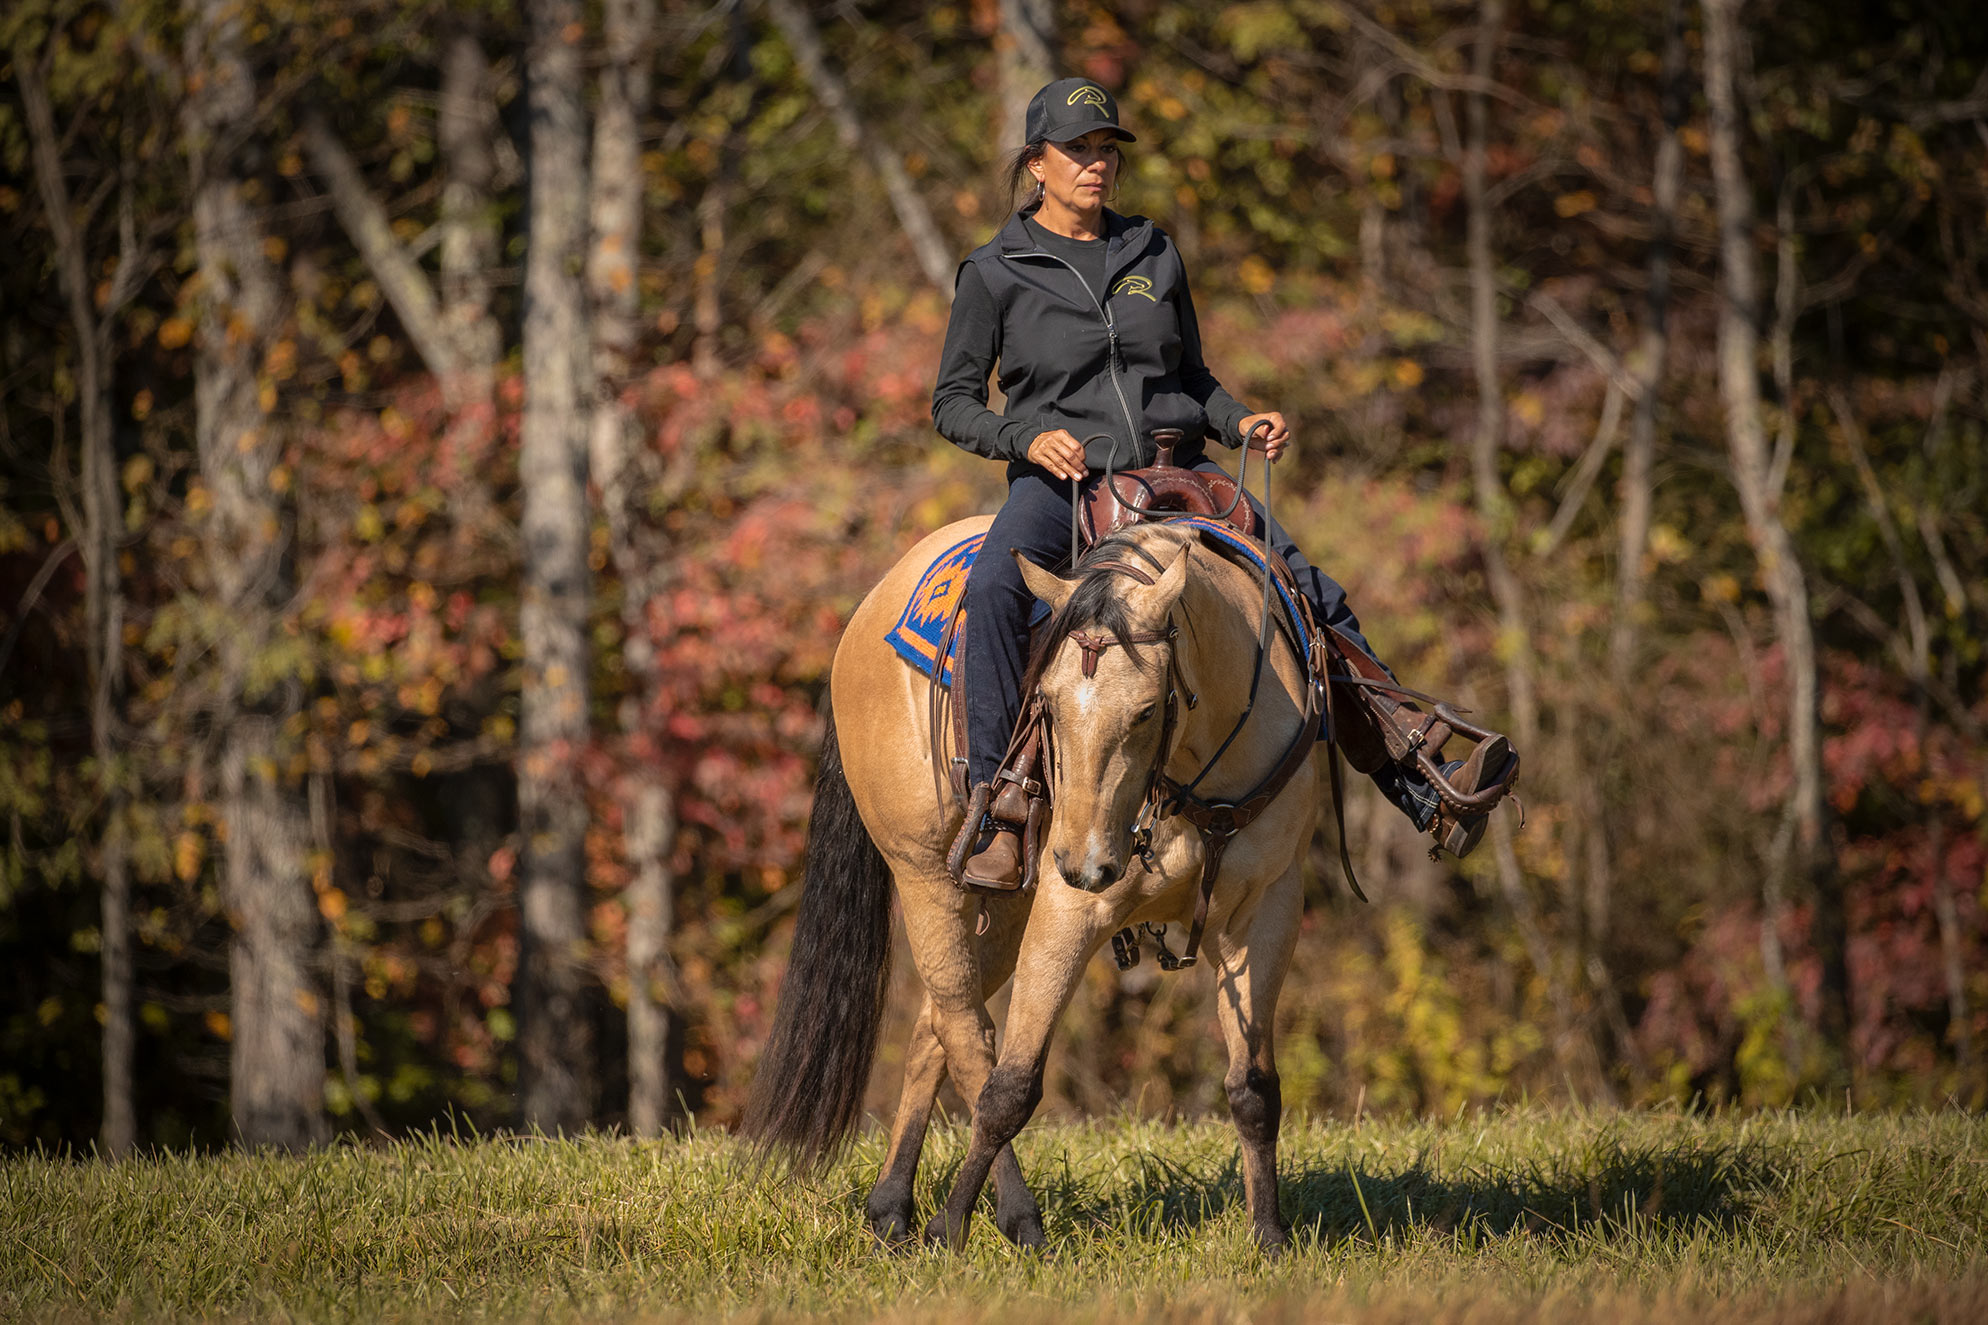 020-Dodge-Luxury-Trail-Horse-For-Sale